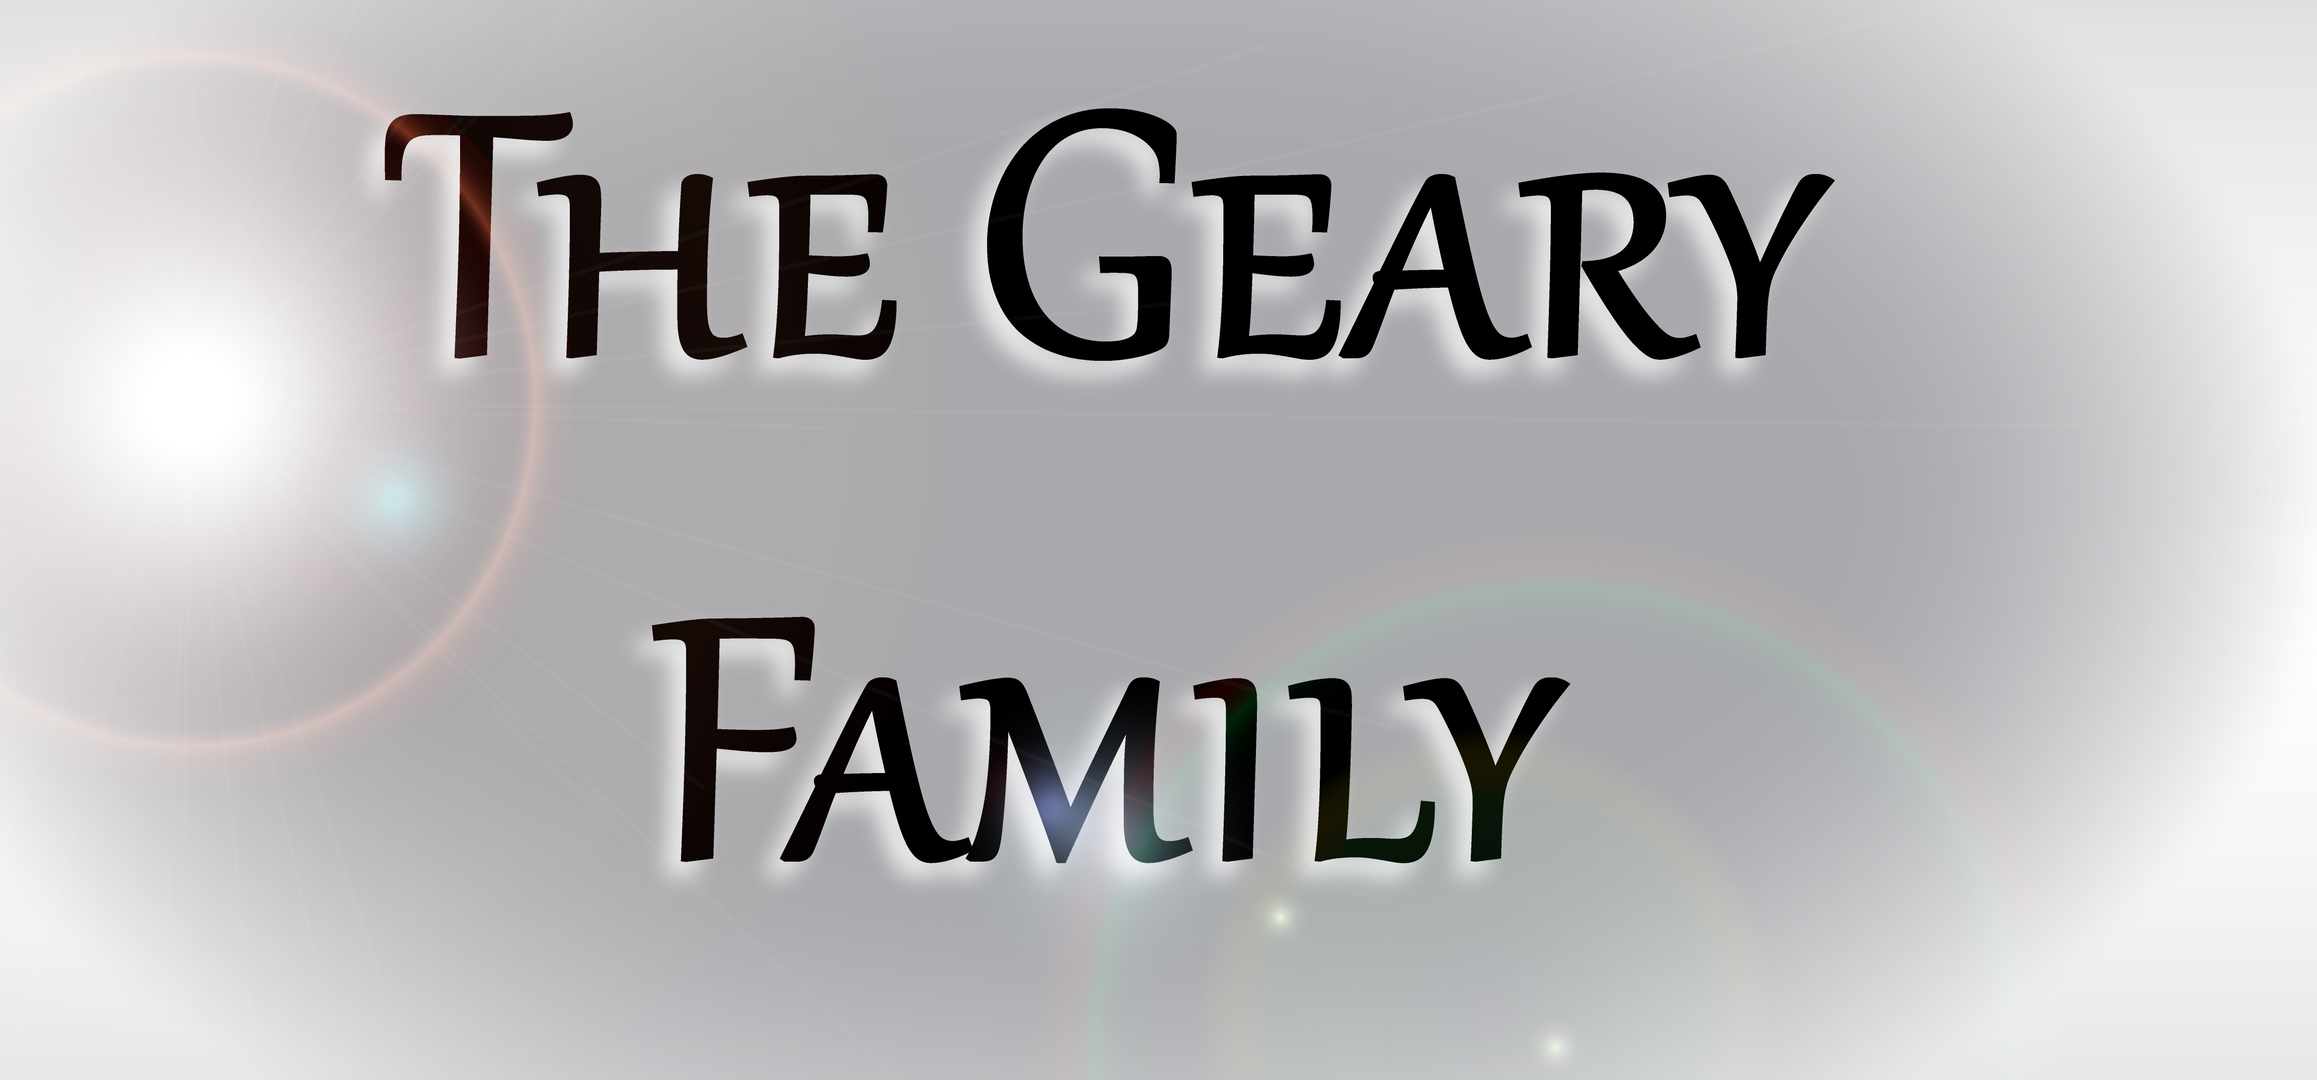 The Geary Family-01.png